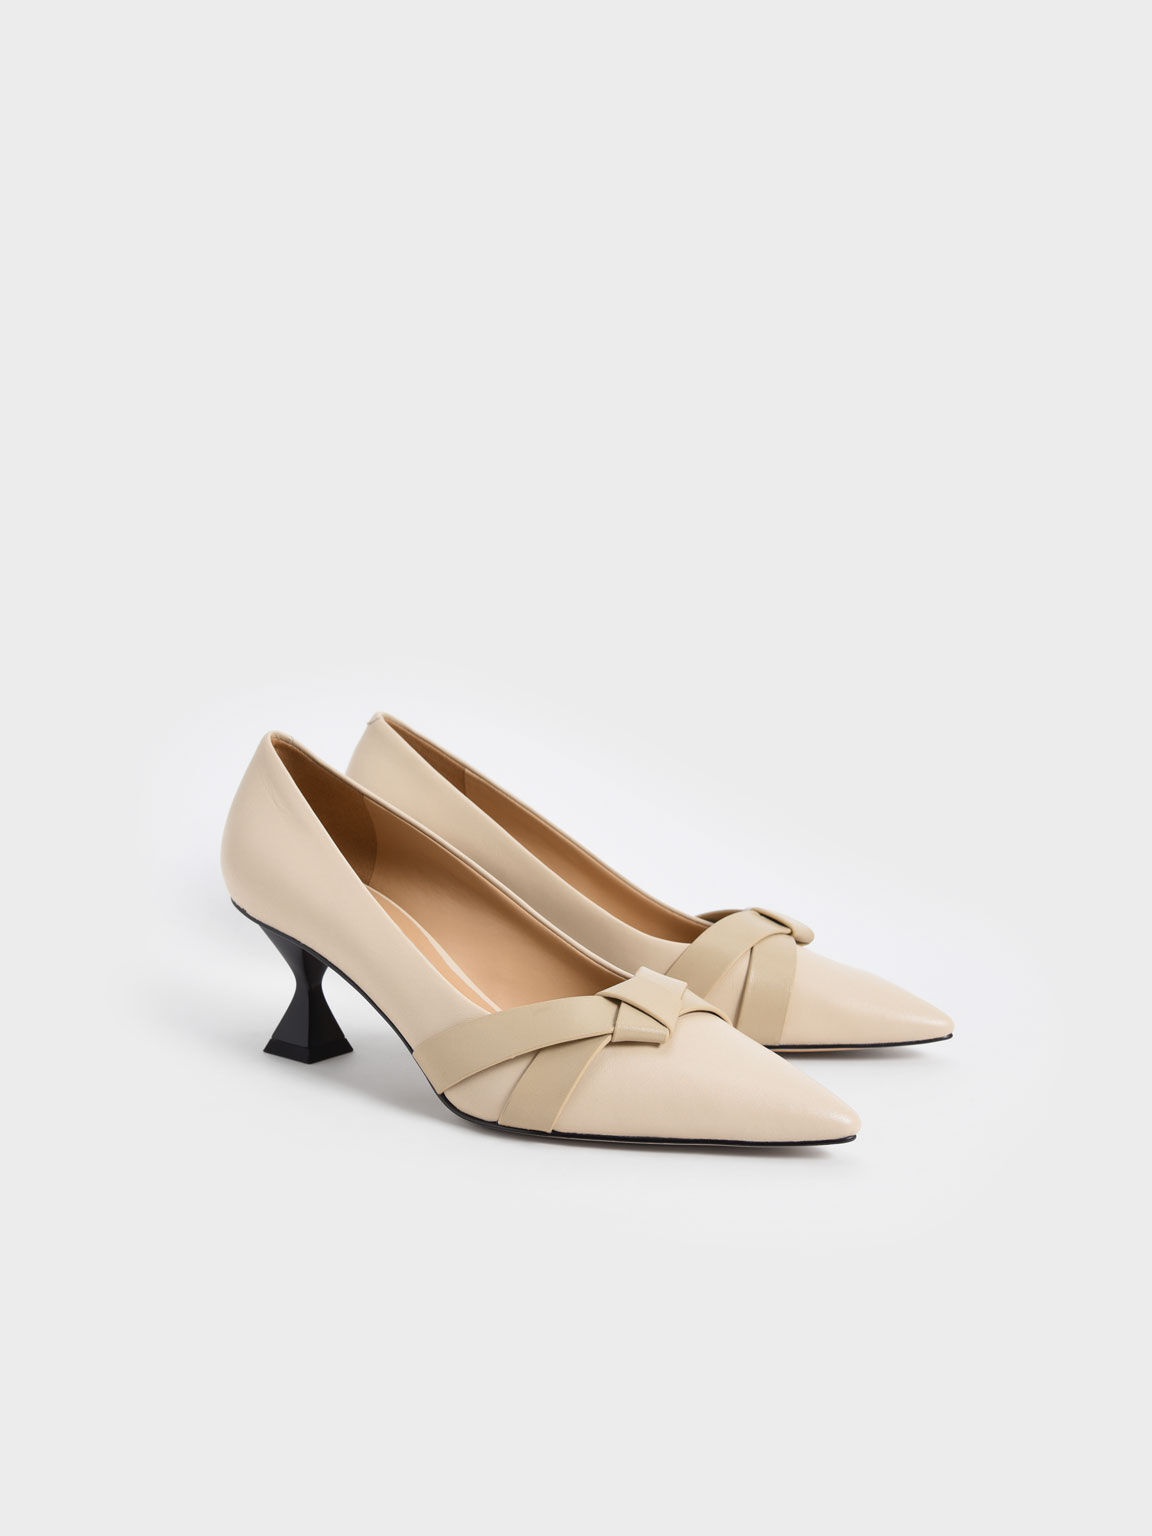 Leather Knotted Bow Sculptural Heel Pumps, Chalk, hi-res